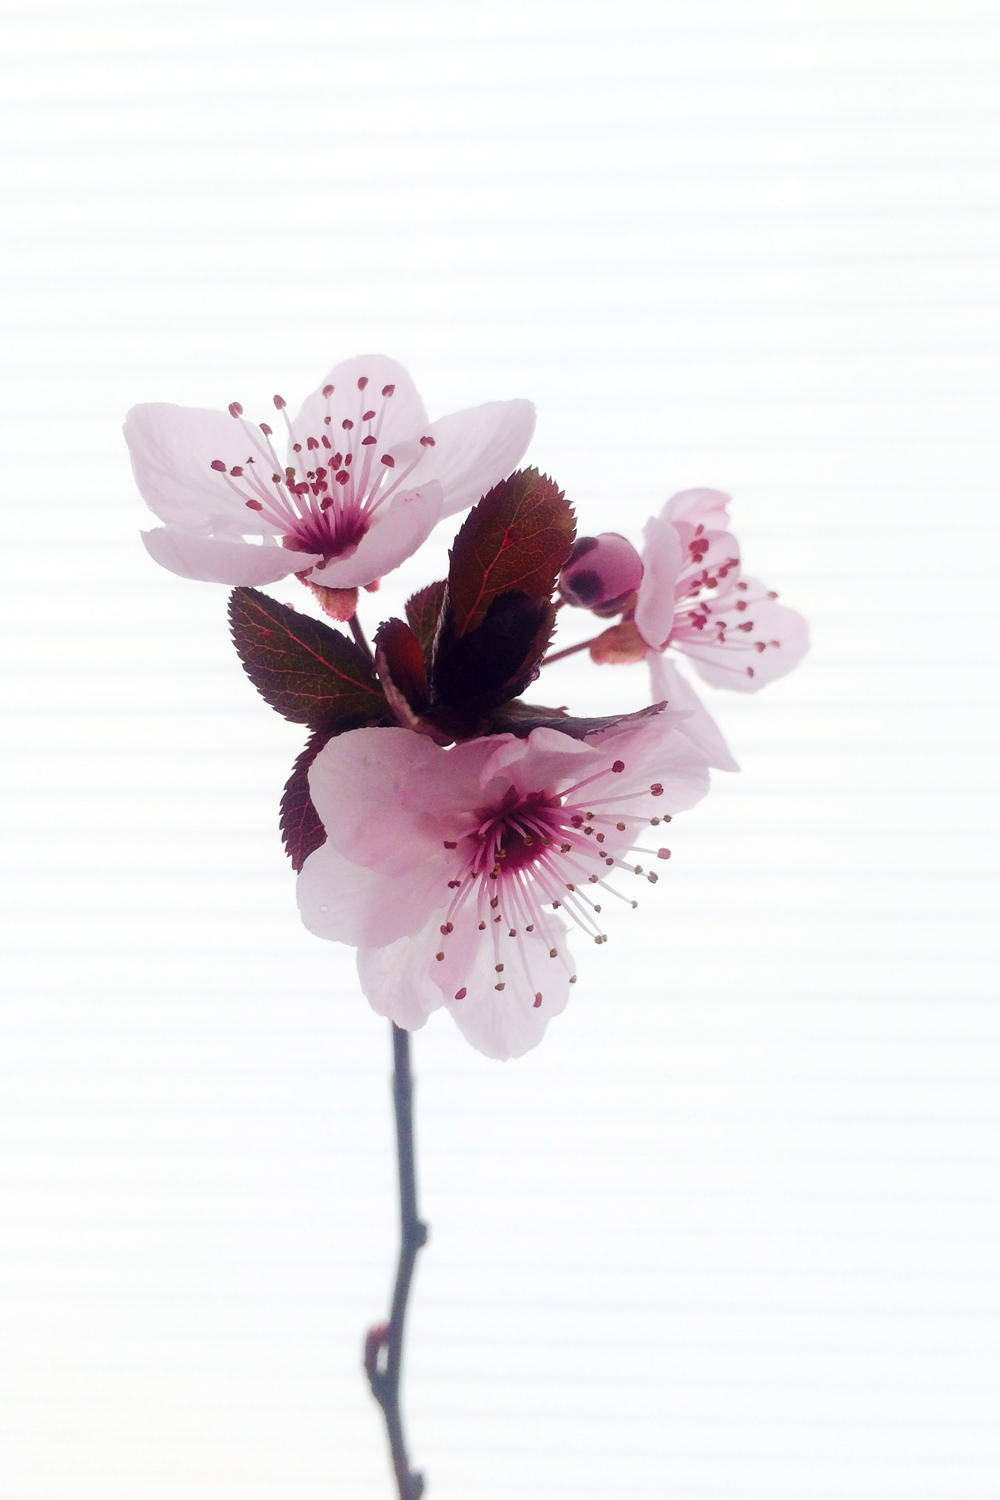 plum blossom - photo by Elly Joel